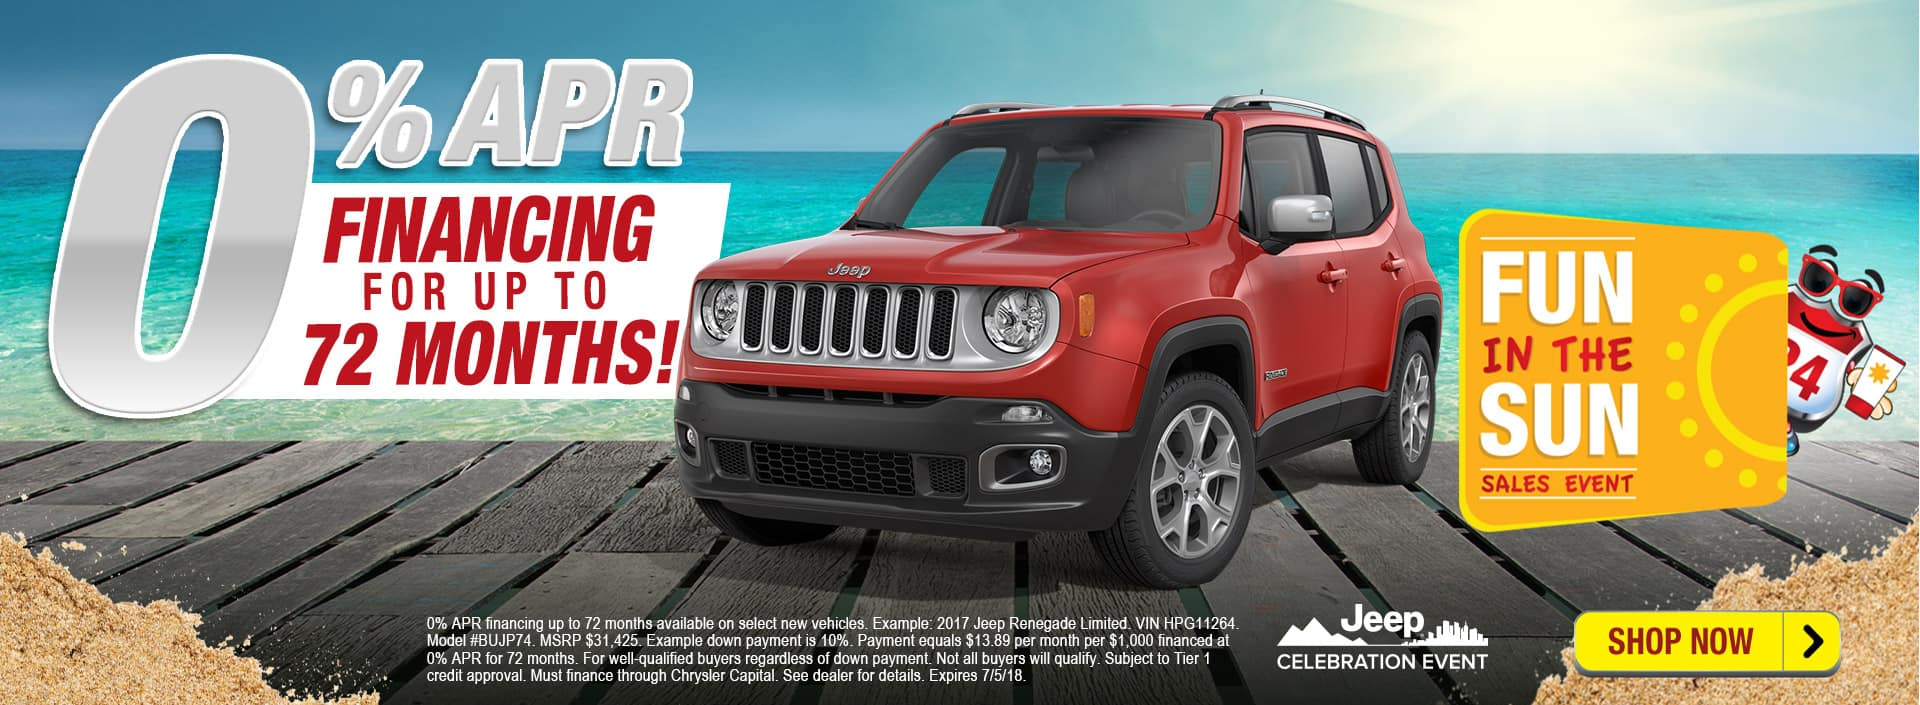 deliveries htm at purchased jeep apply chrysler and ram percent models to zero country financing retail of new unused dodge offers selected